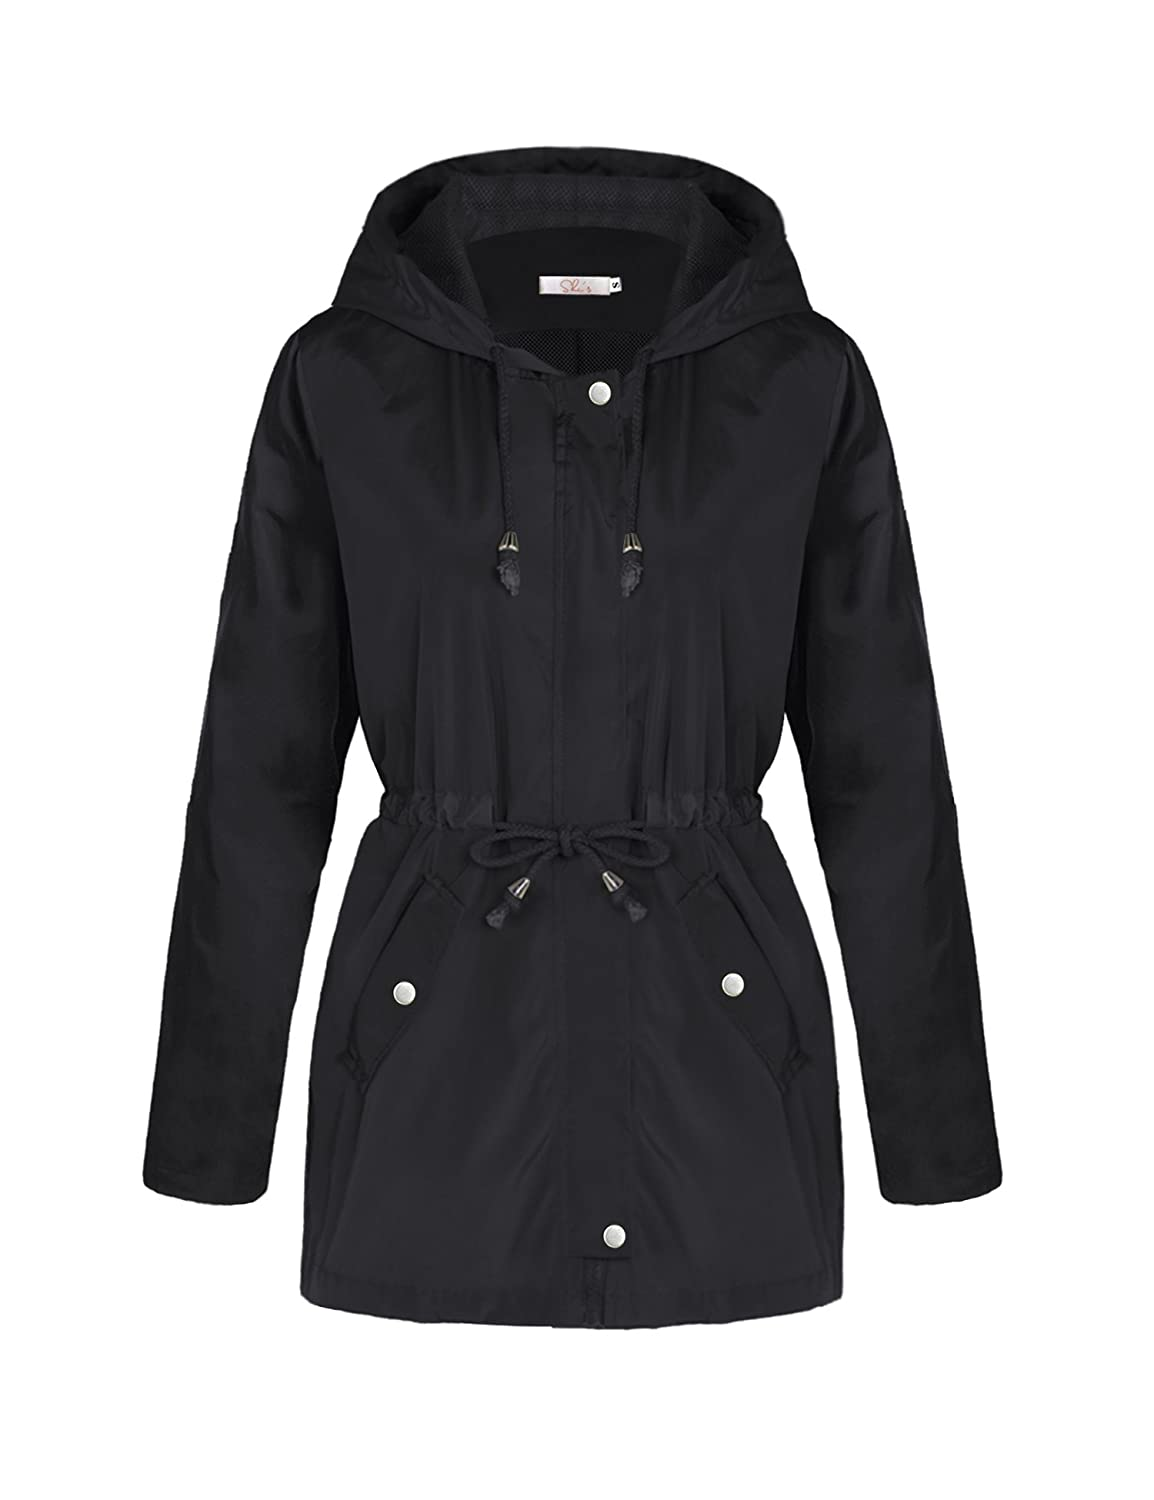 3f75747269a Top 10 wholesale Waterproof Running Jacket Womens - Chinabrands.com